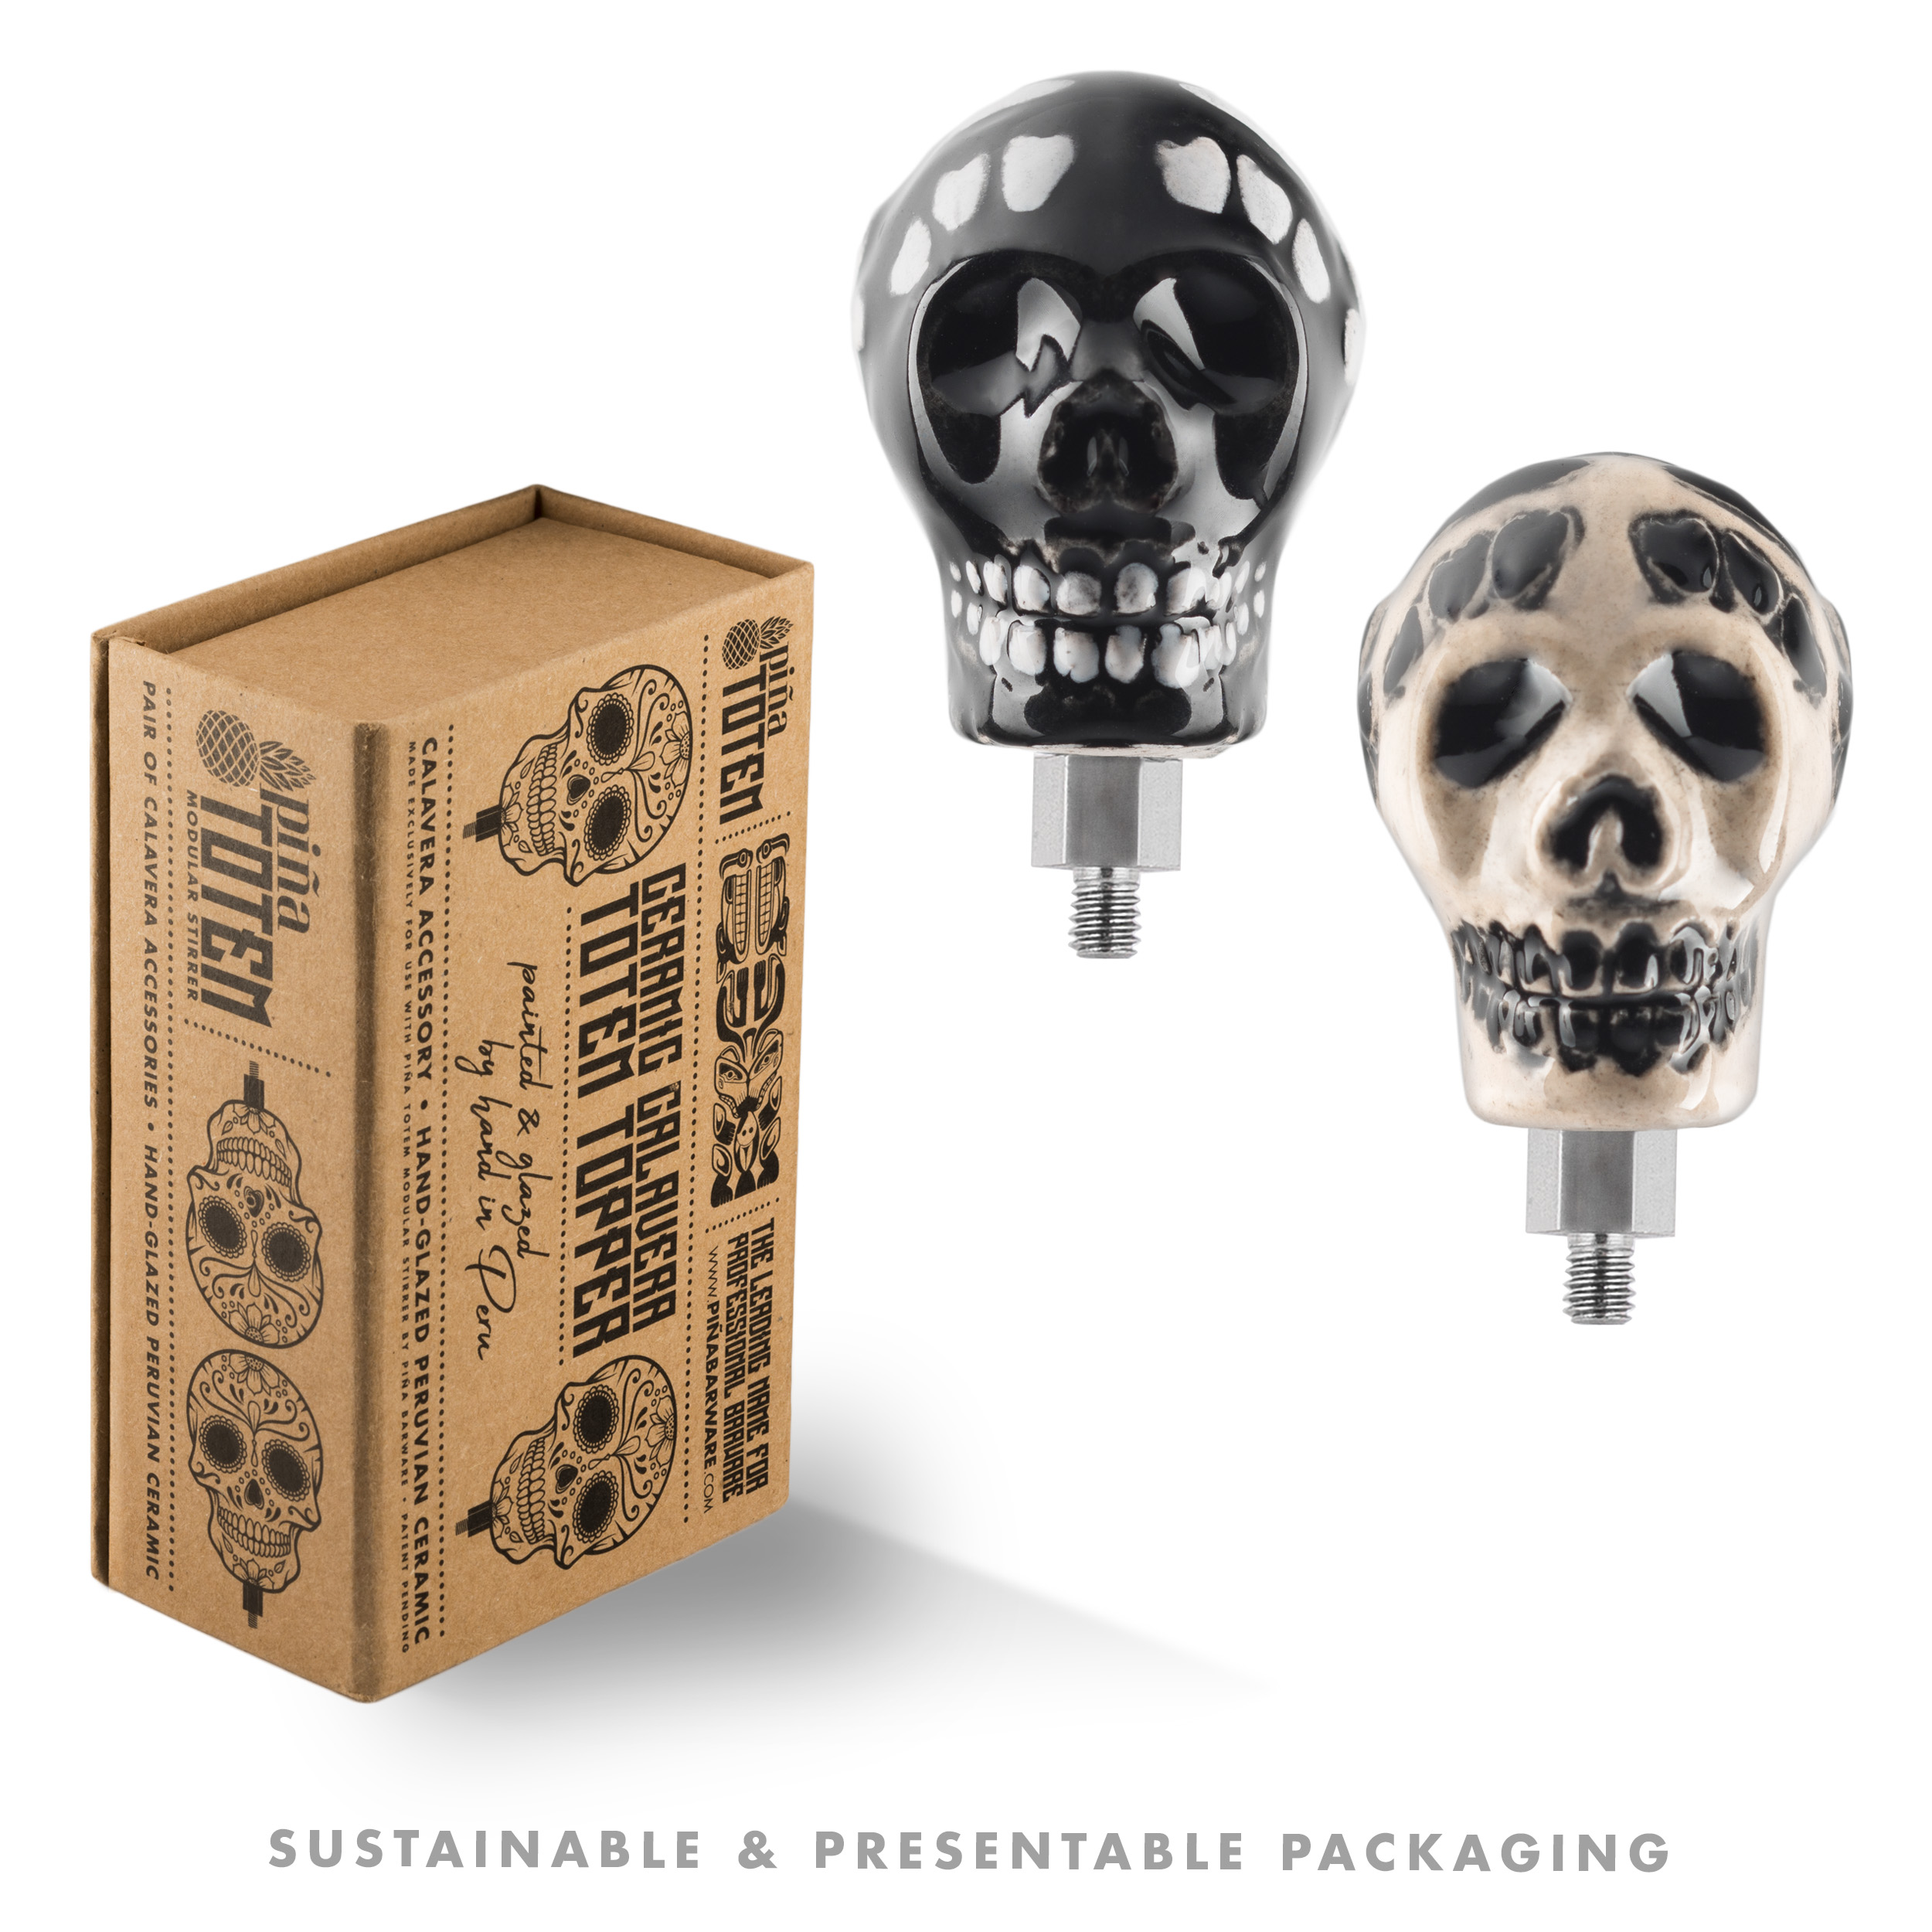 Accessory_BlackWhiteSkulls_Packaging_V1.jpg